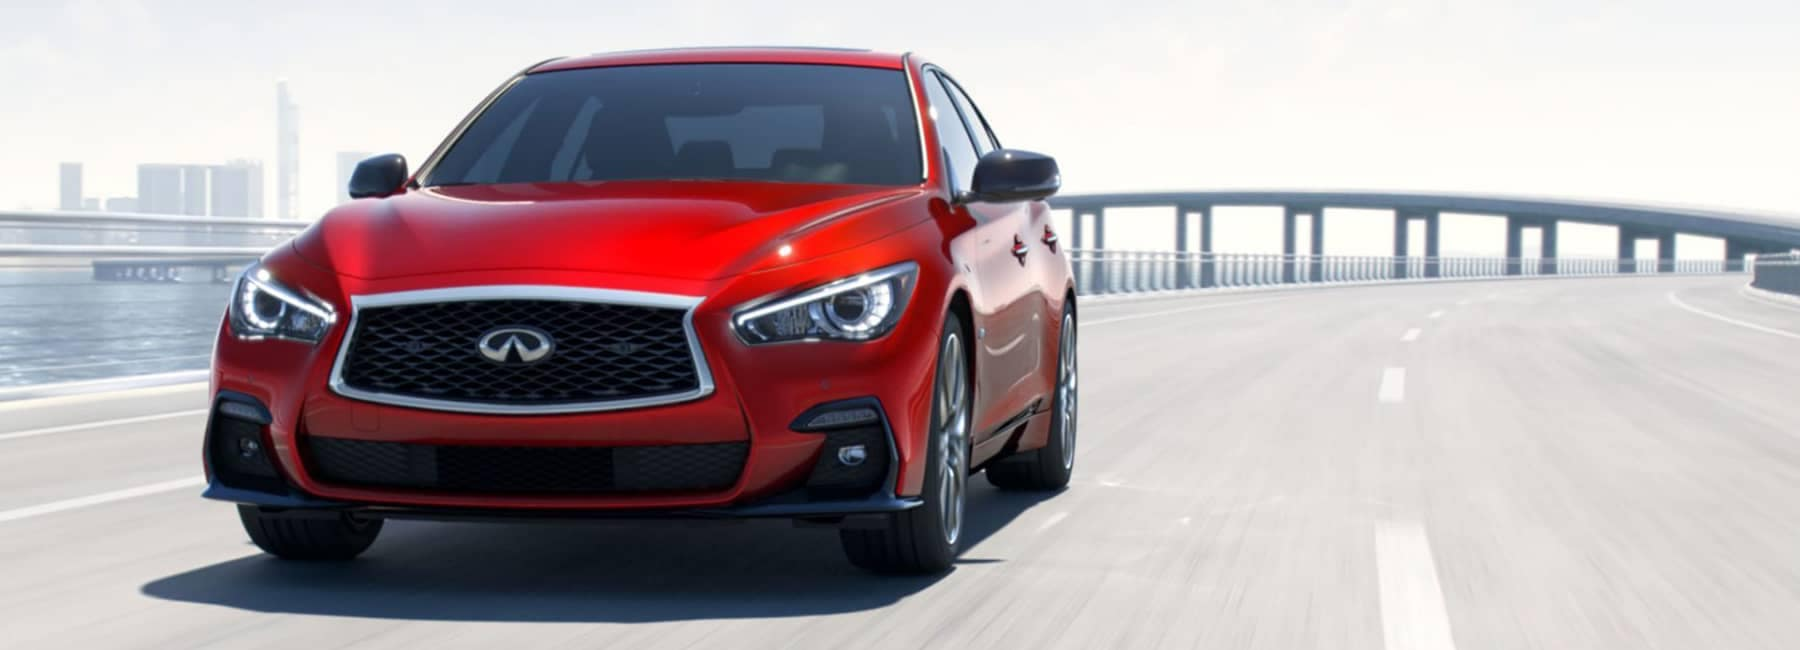 About Us Dreyer Reinbold Infiniti In Indianapolis In